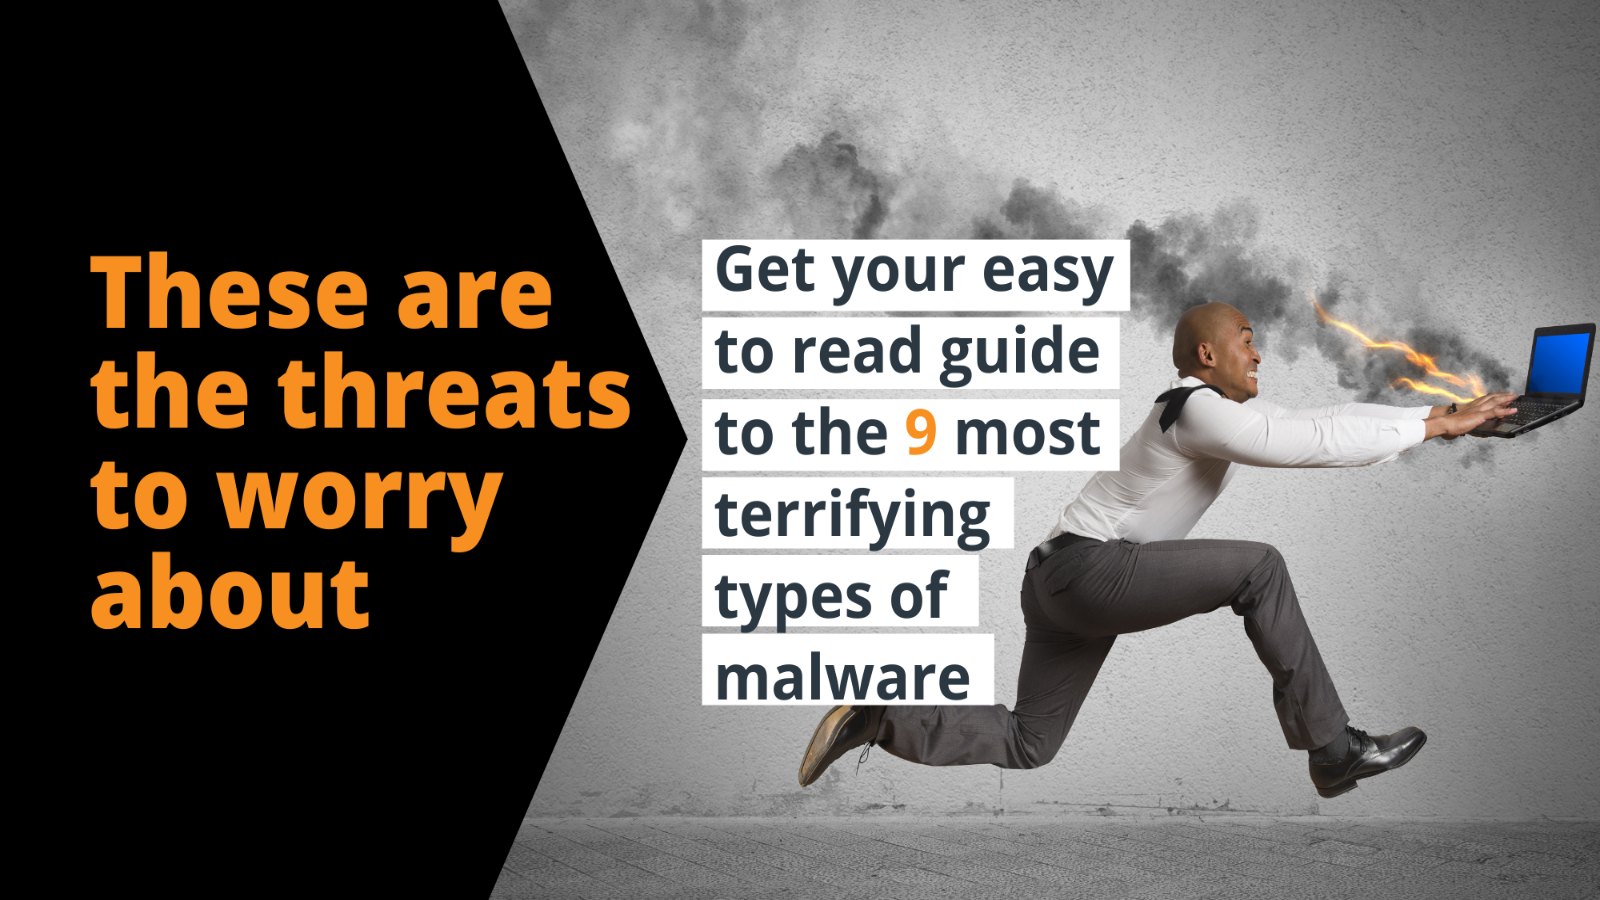 9 Types of Malware to Worry About